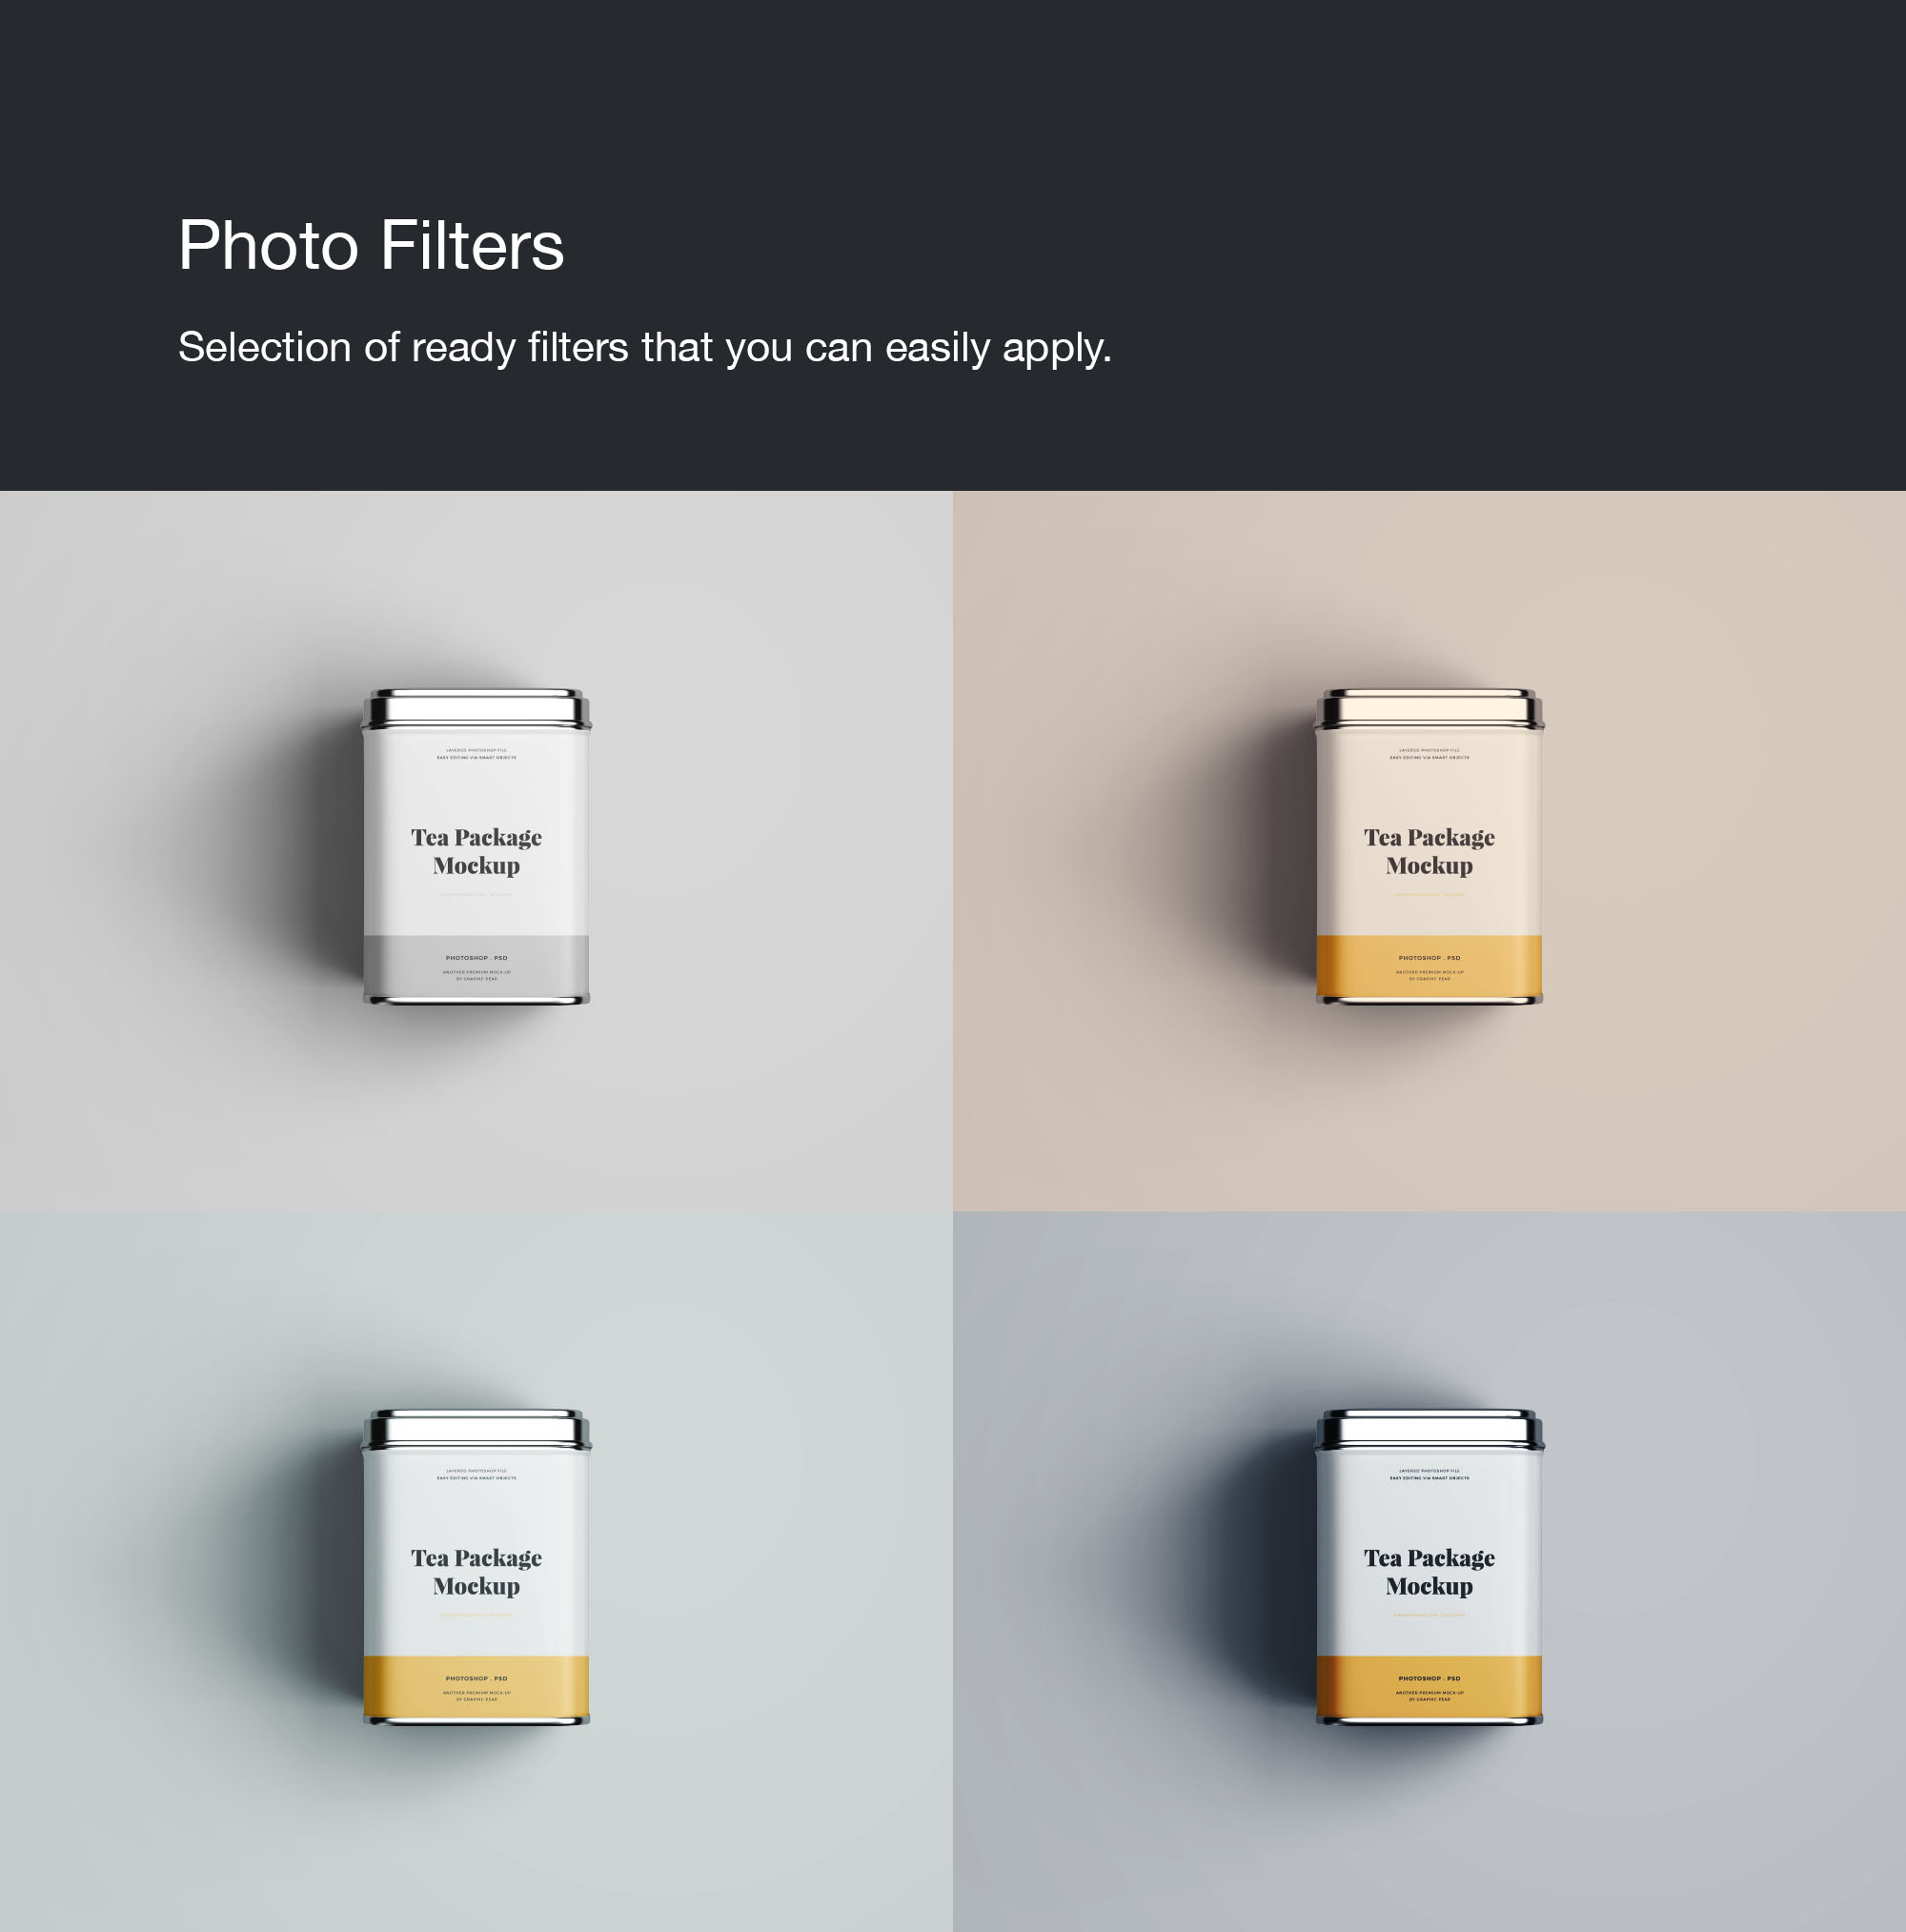 Tea Package Mockup - Filters